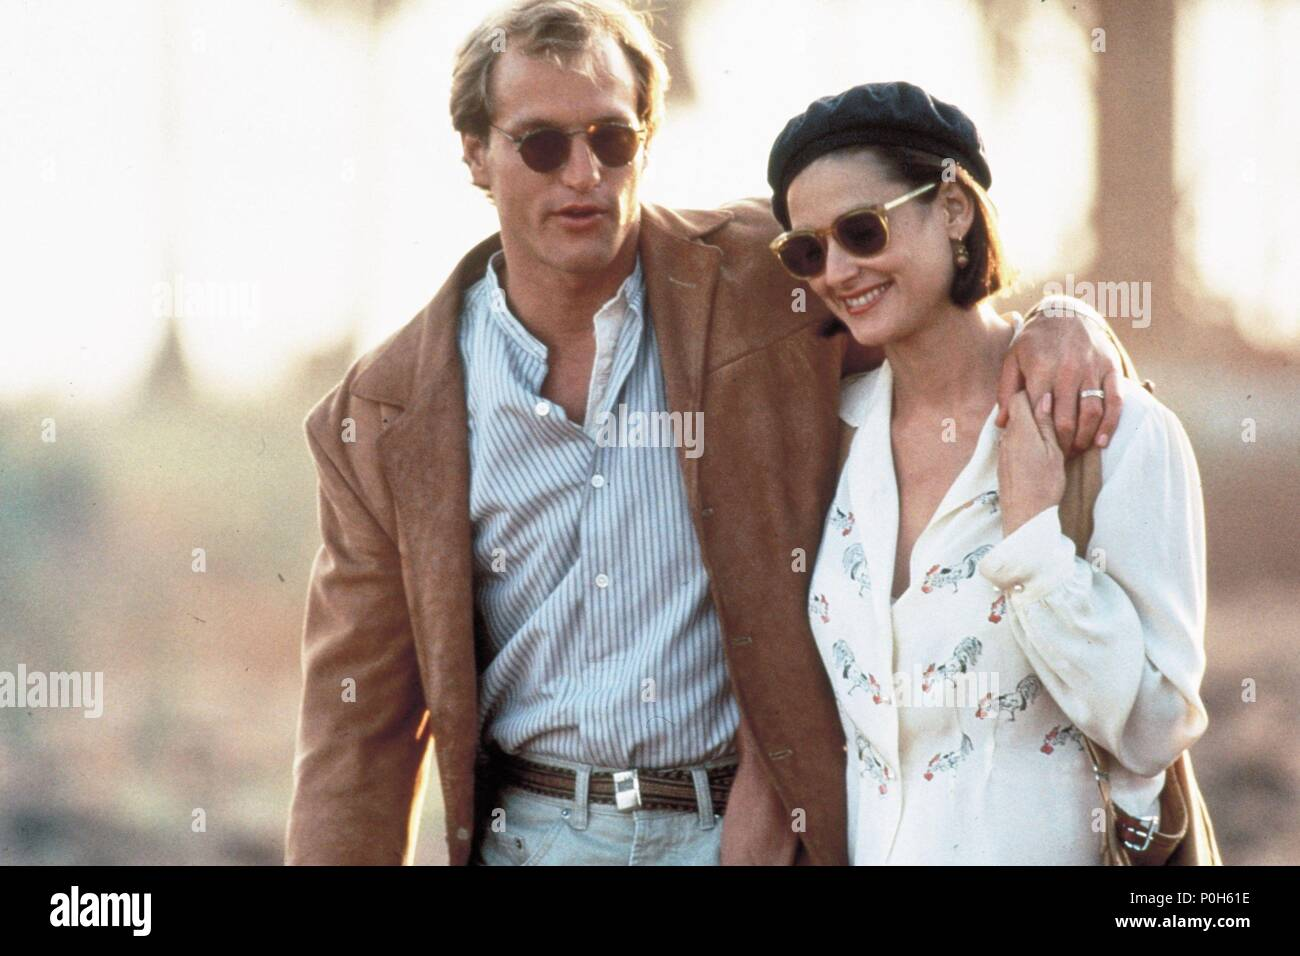 Original Film Title: INDECENT PROPOSAL.  English Title: INDECENT PROPOSAL.  Film Director: ADRIAN LYNE.  Year: 1993.  Stars: DEMI MOORE; WOODY HARRELSON. Credit: PARAMOUNT PICTURES / Album - Stock Image